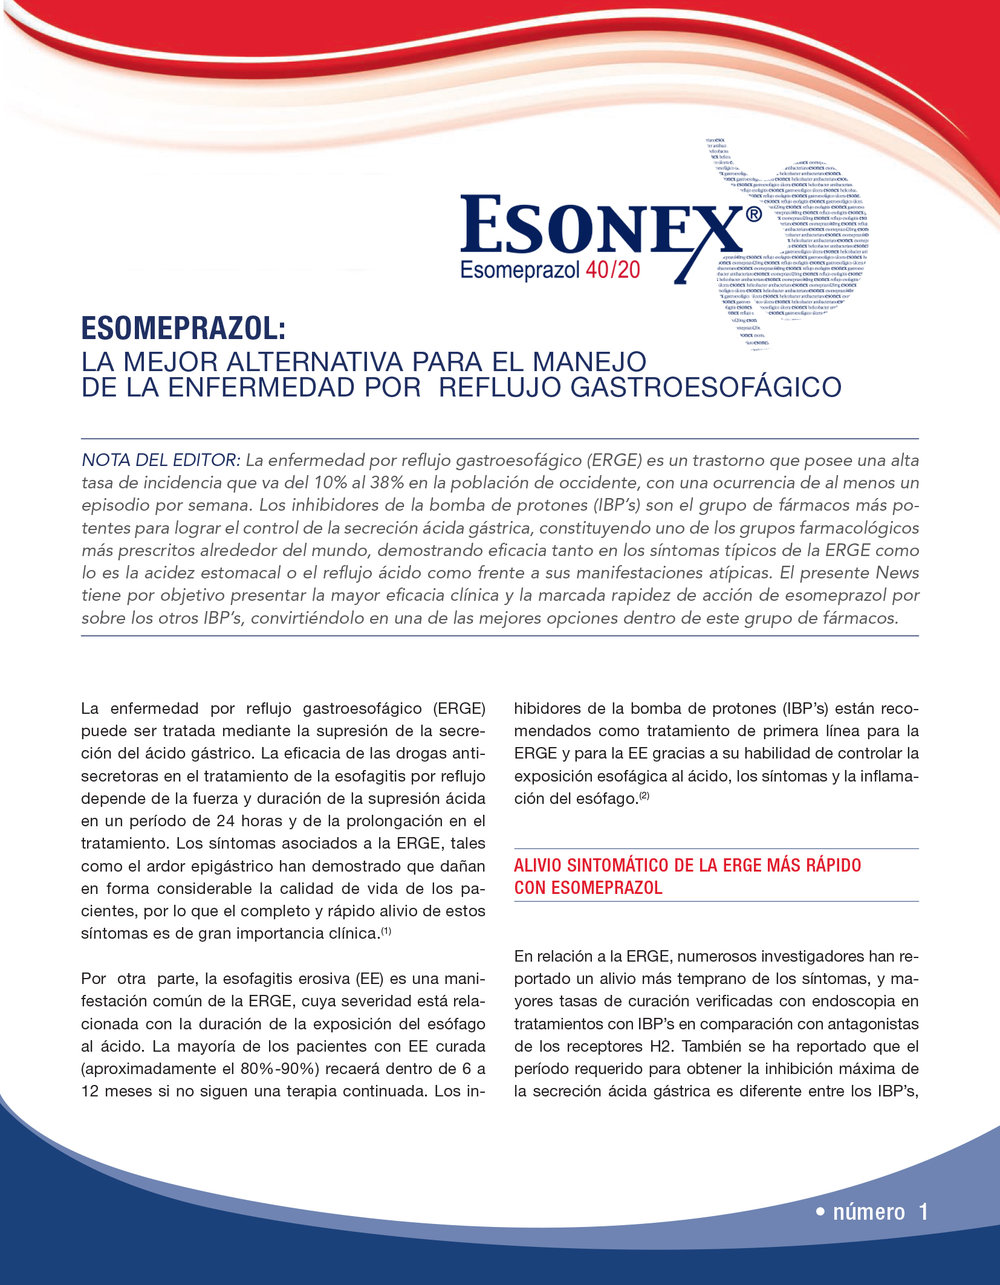 Esonex_News1 final_unlocked-1.jpg